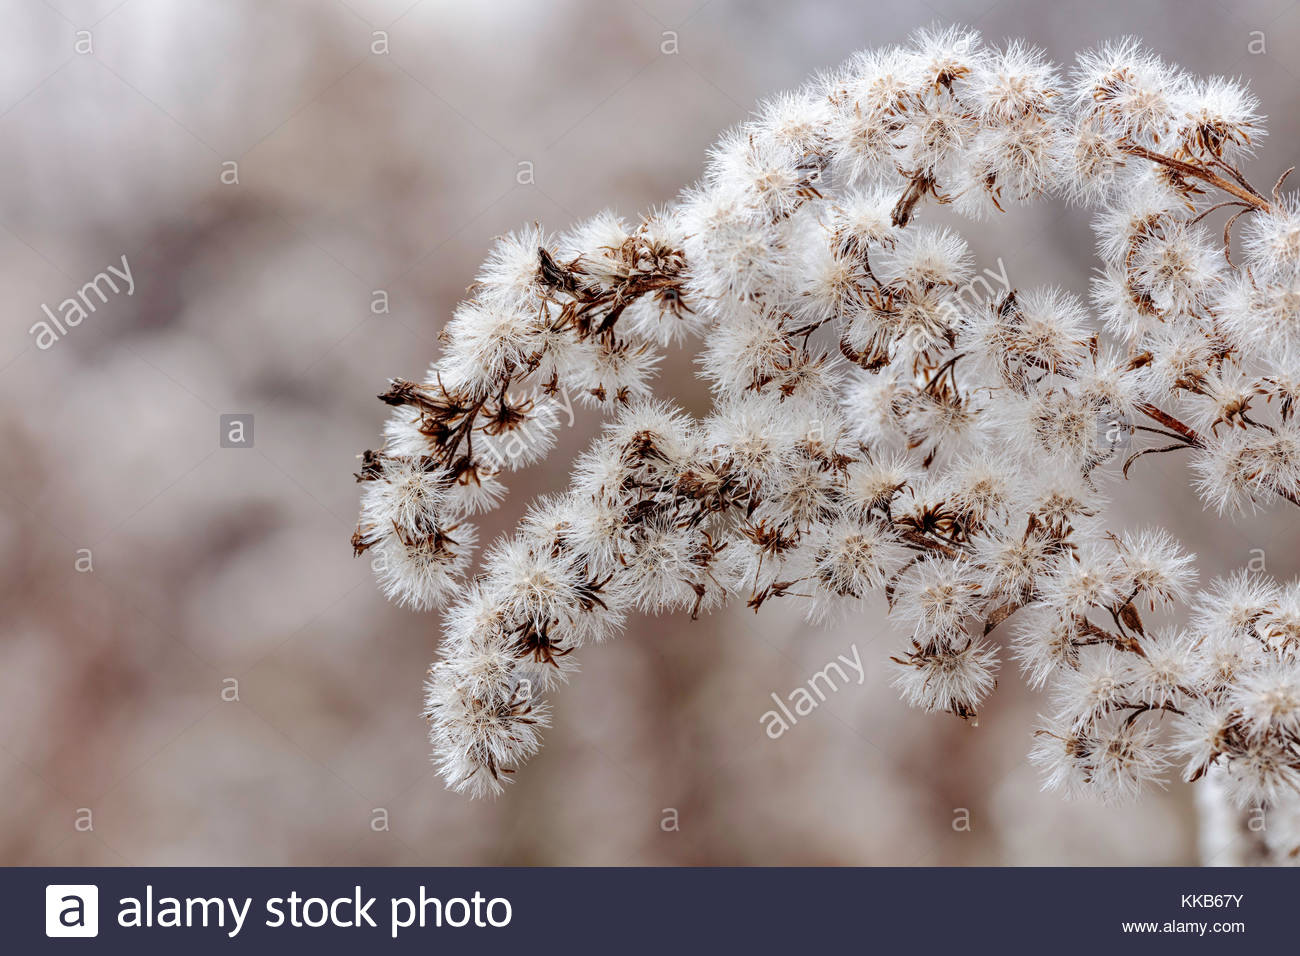 Goldenrod pappus a tuft of hairs on seed to aid in wind dispersal in autumn in Rouge National Urban Park Toronto - Stock Image